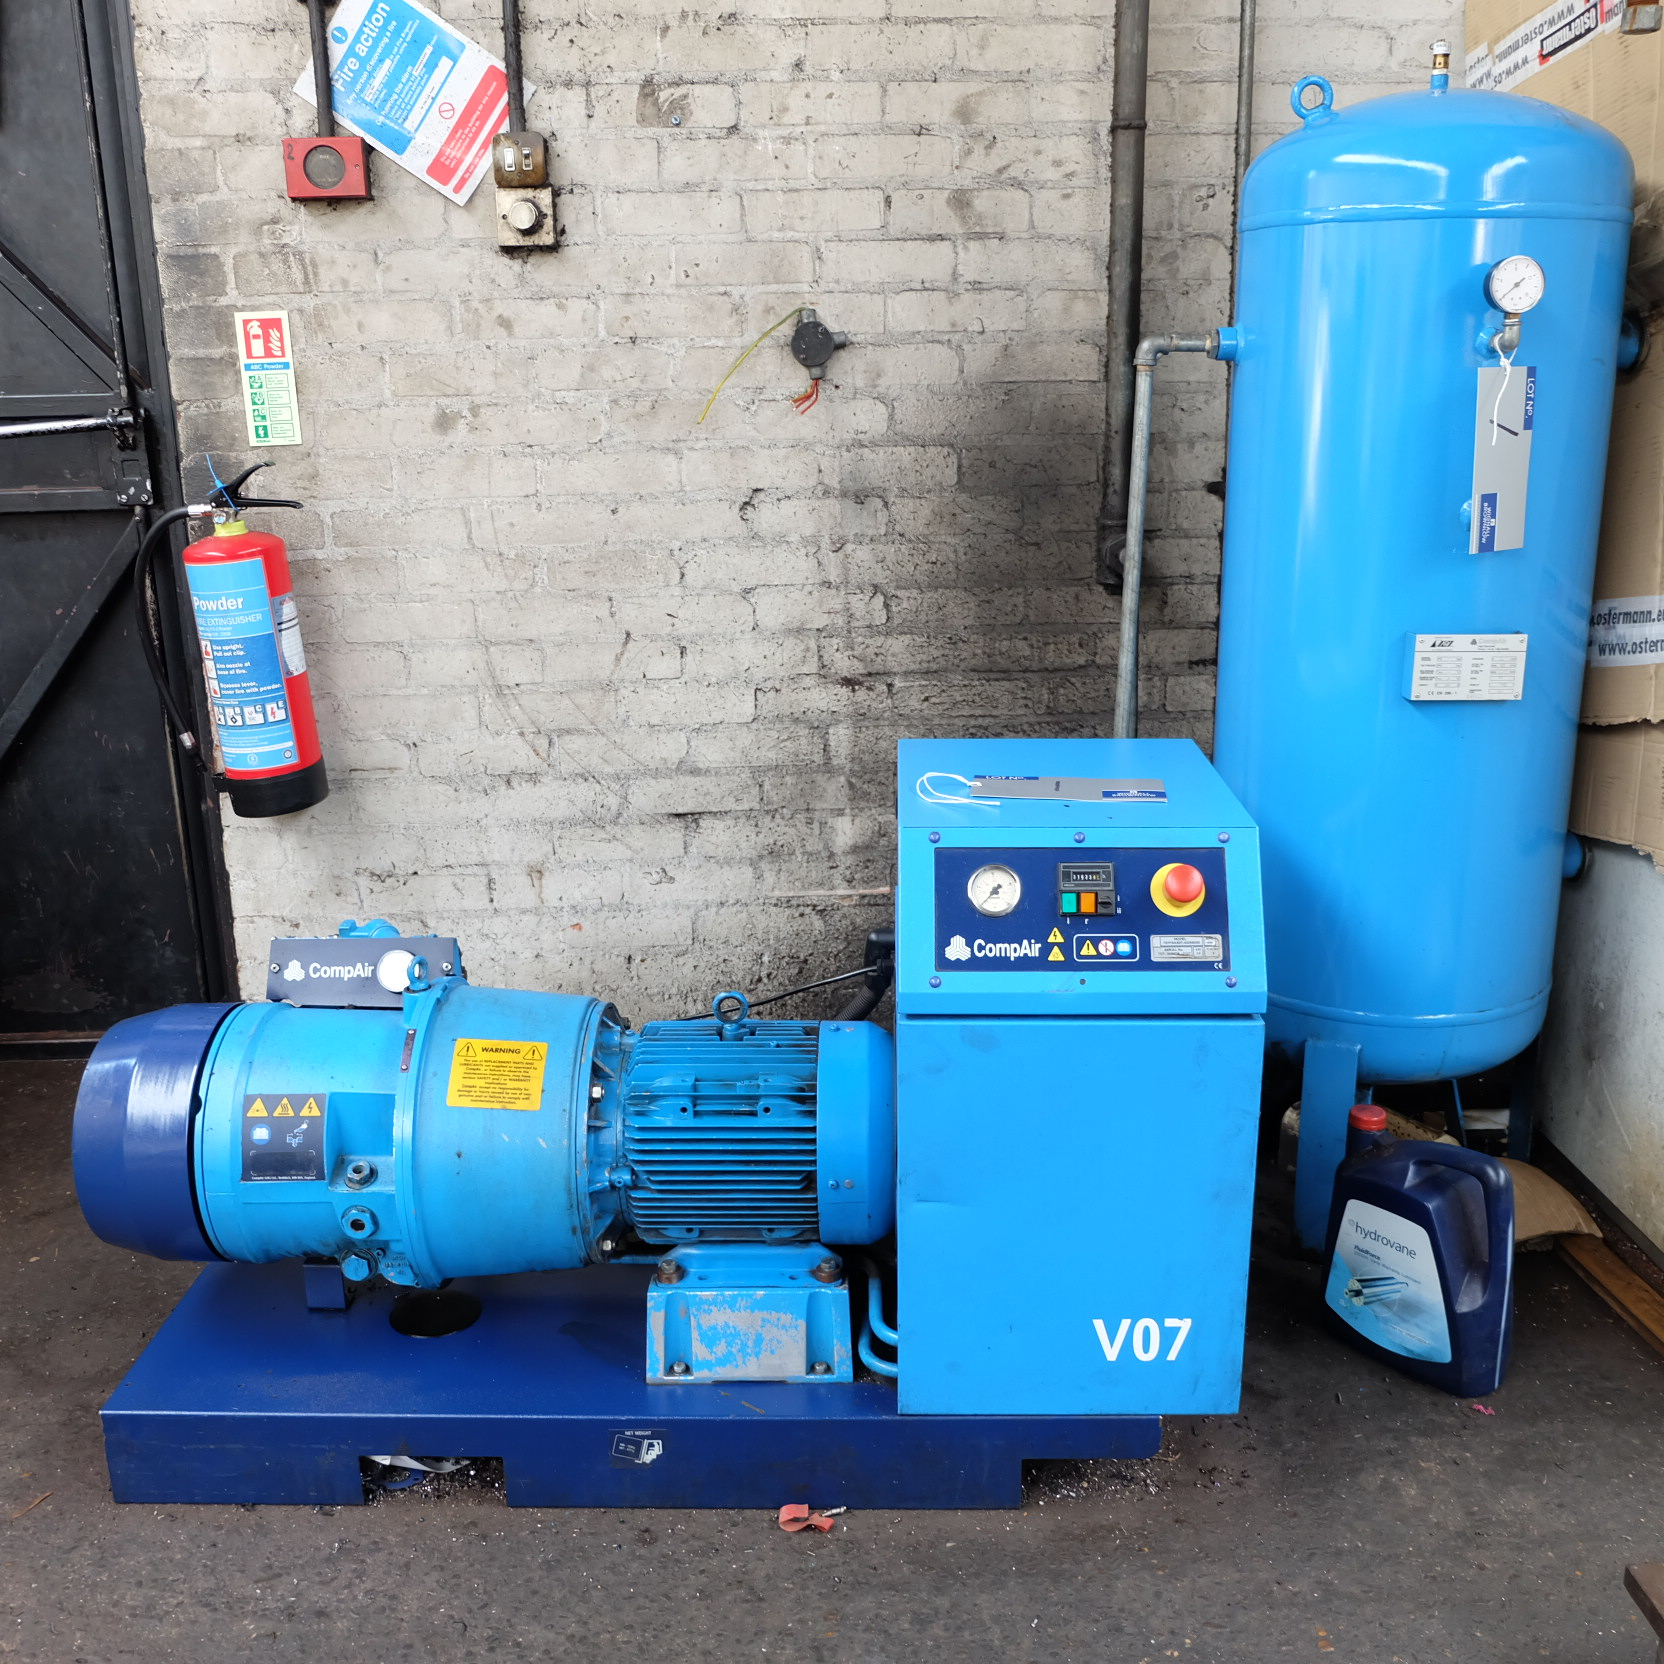 Lot 1 - A CompAir V07 Model 707PSAS07-4035S000 Rotary Air Compressor No.707-005803-0107, 1460rpm, 7.5kW with